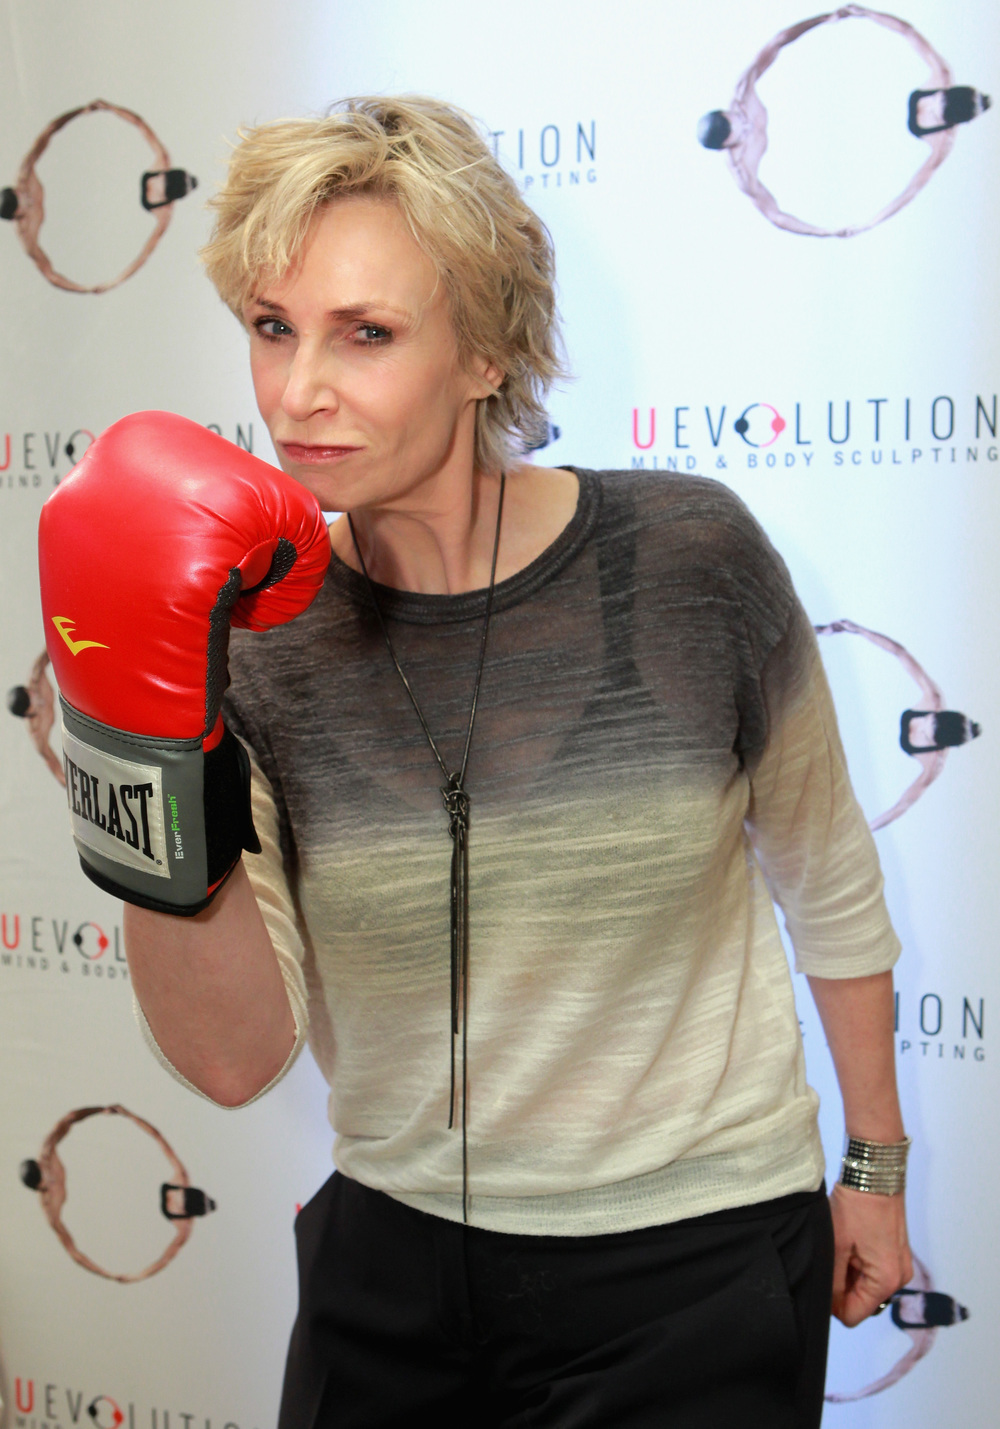 Jane Lynch of Glee